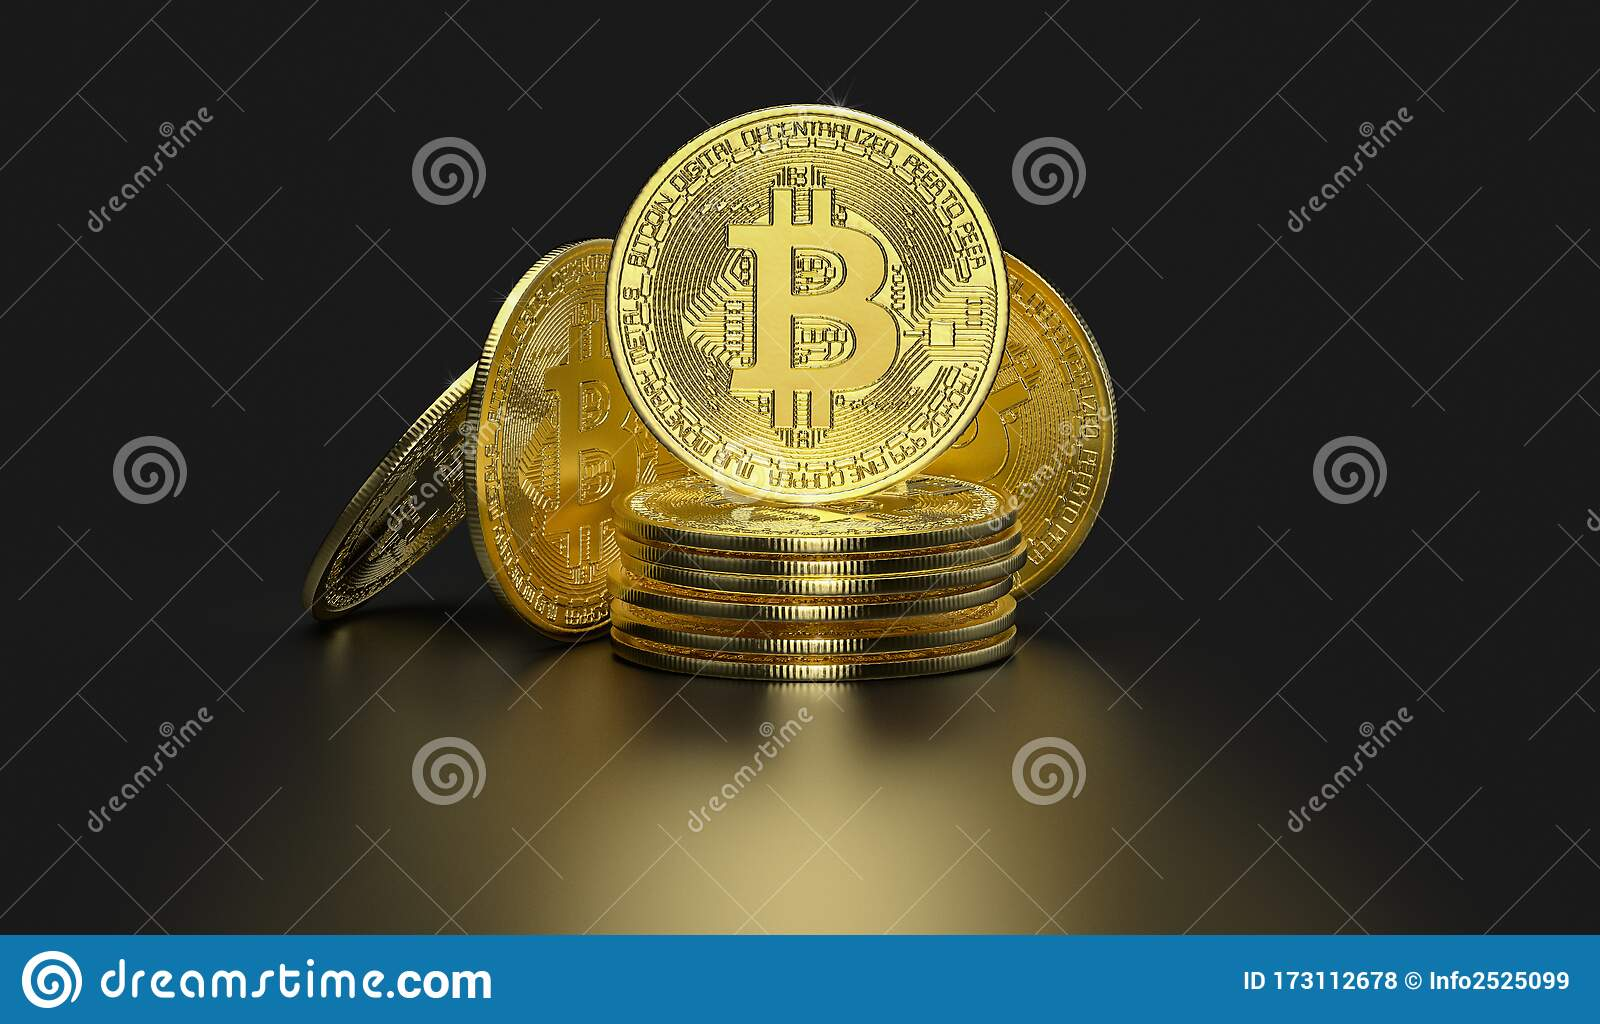 what can you buy with digital currency